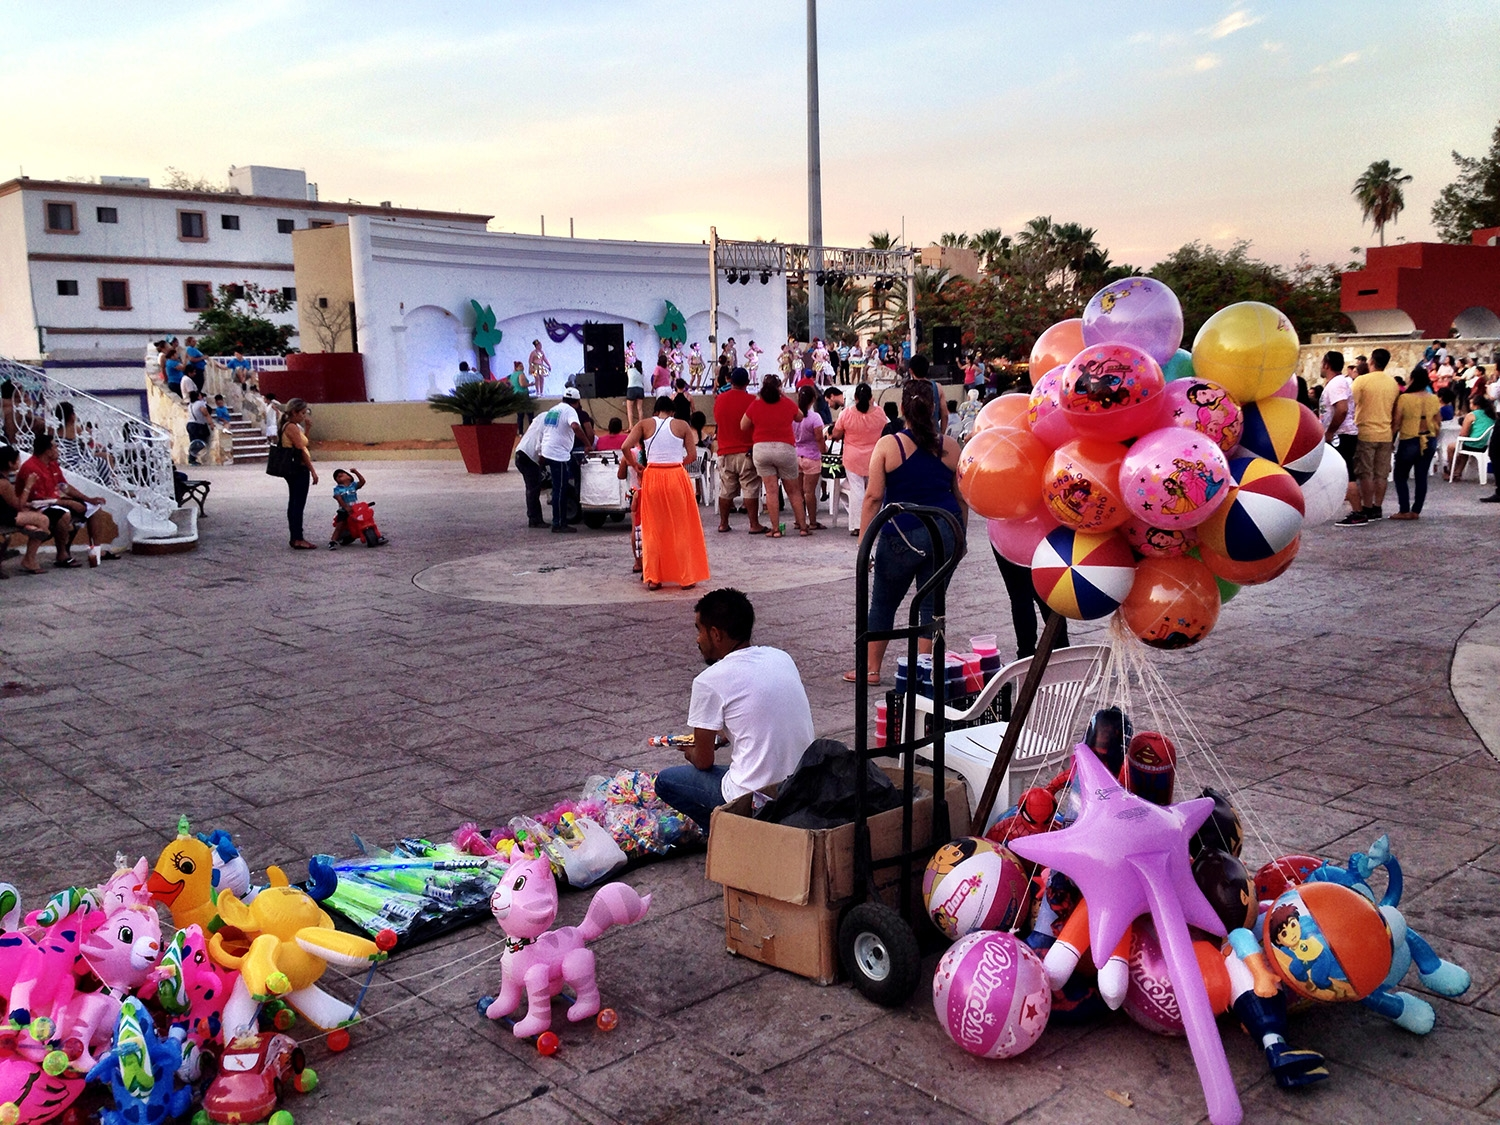 A man sits by colourful stuffed animals and balloons in the square in San Jose Del Cabo